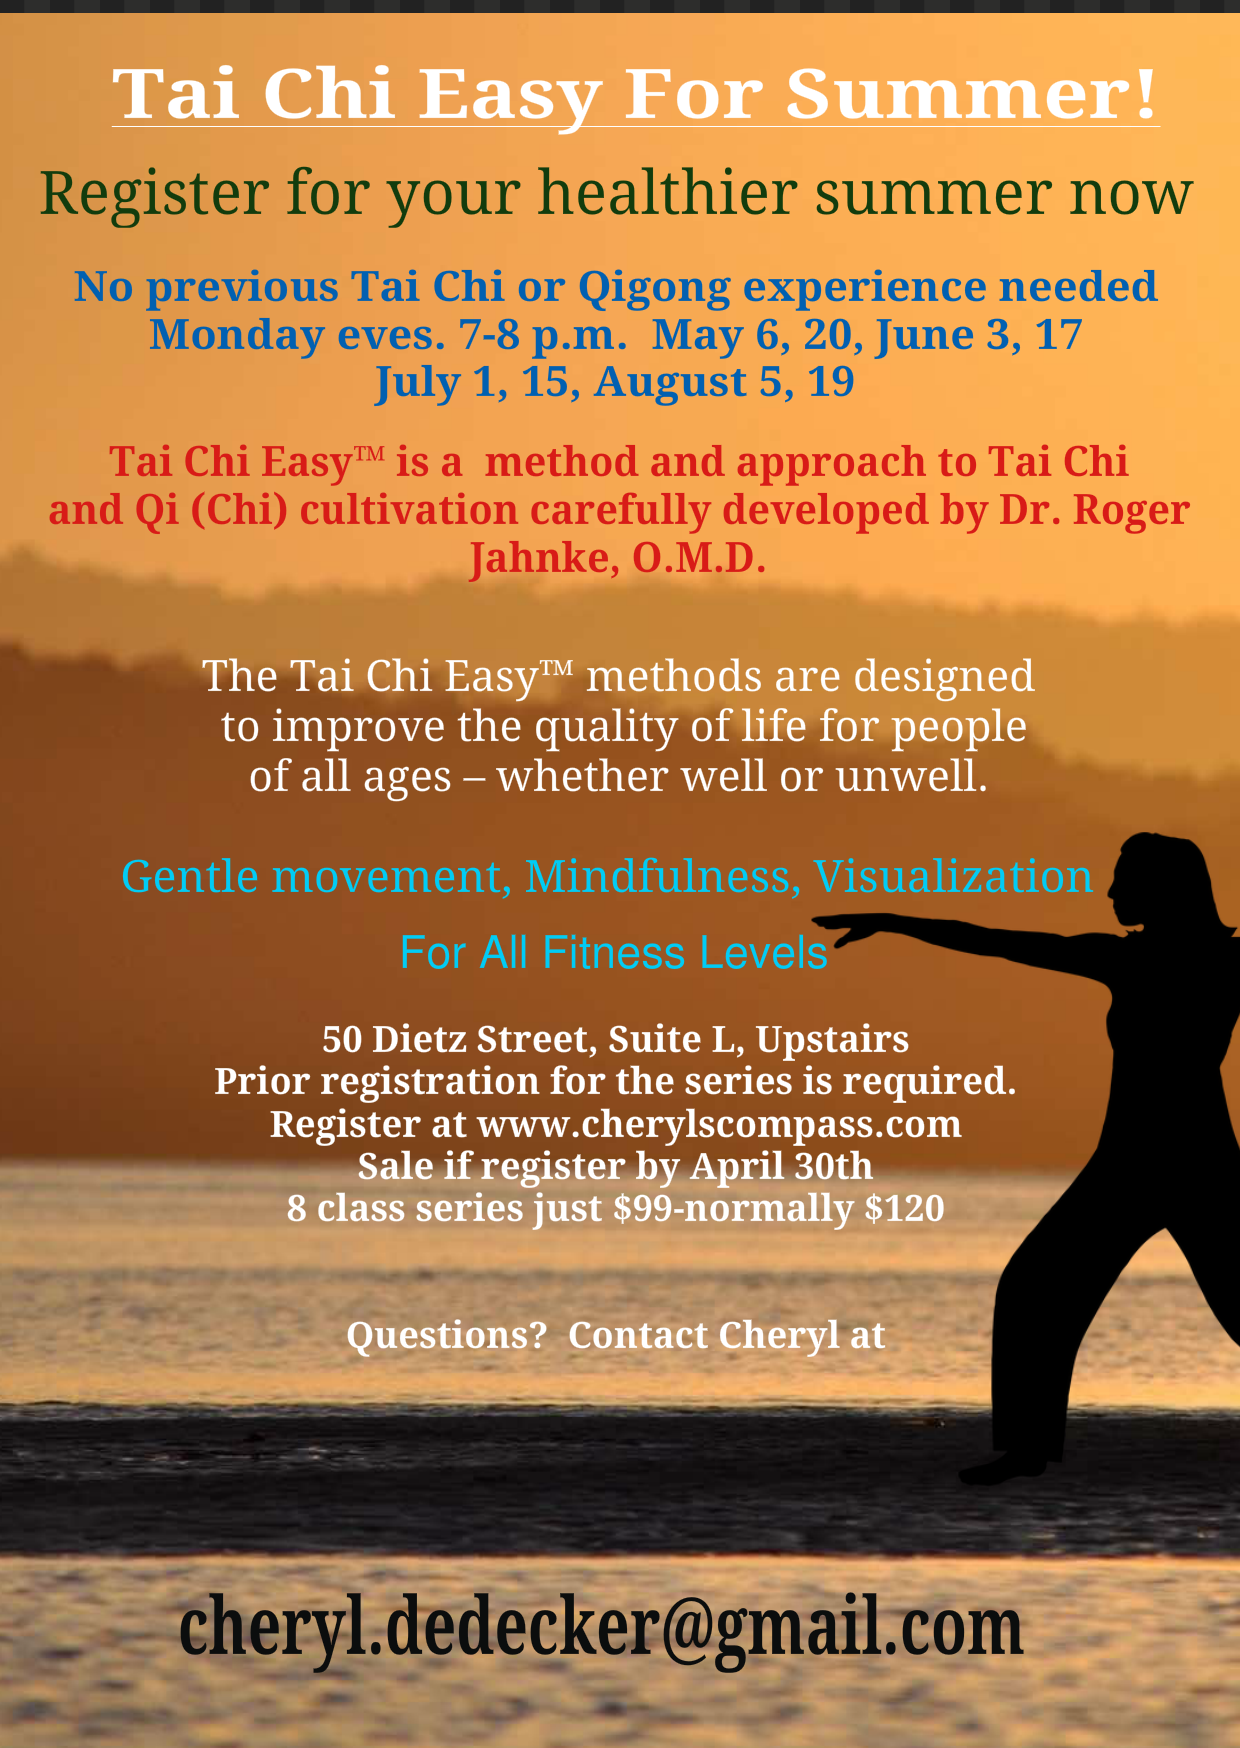 Tai Chi Easy Summer Flyer Final 2.png